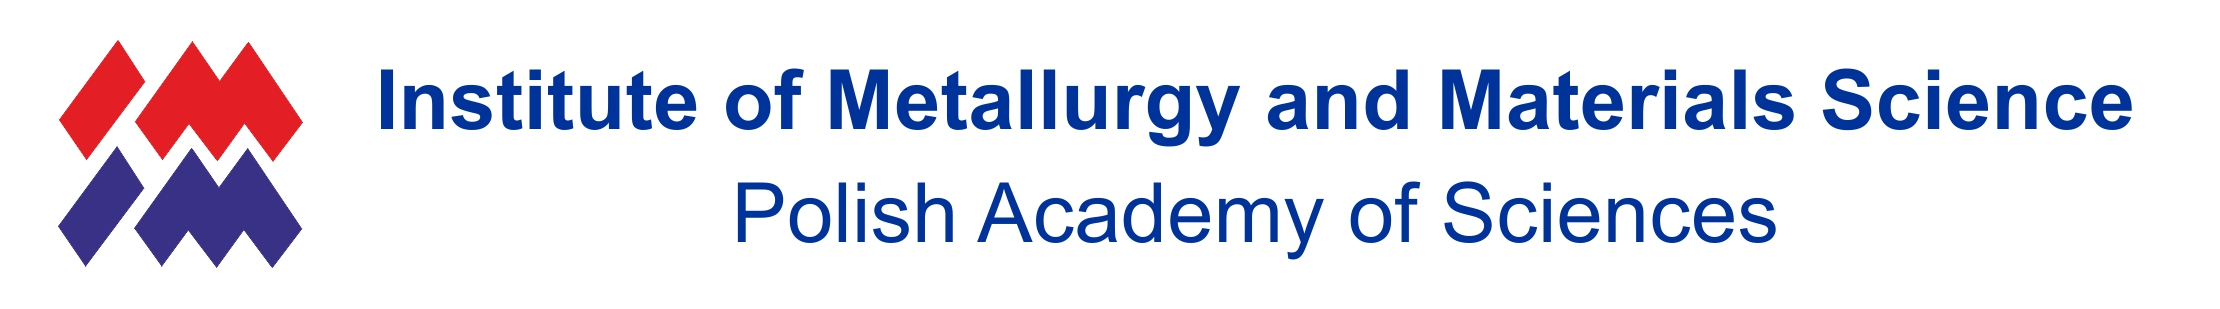 Institute of Metallurgy and Materials Science Polish Academy of Sciences logo